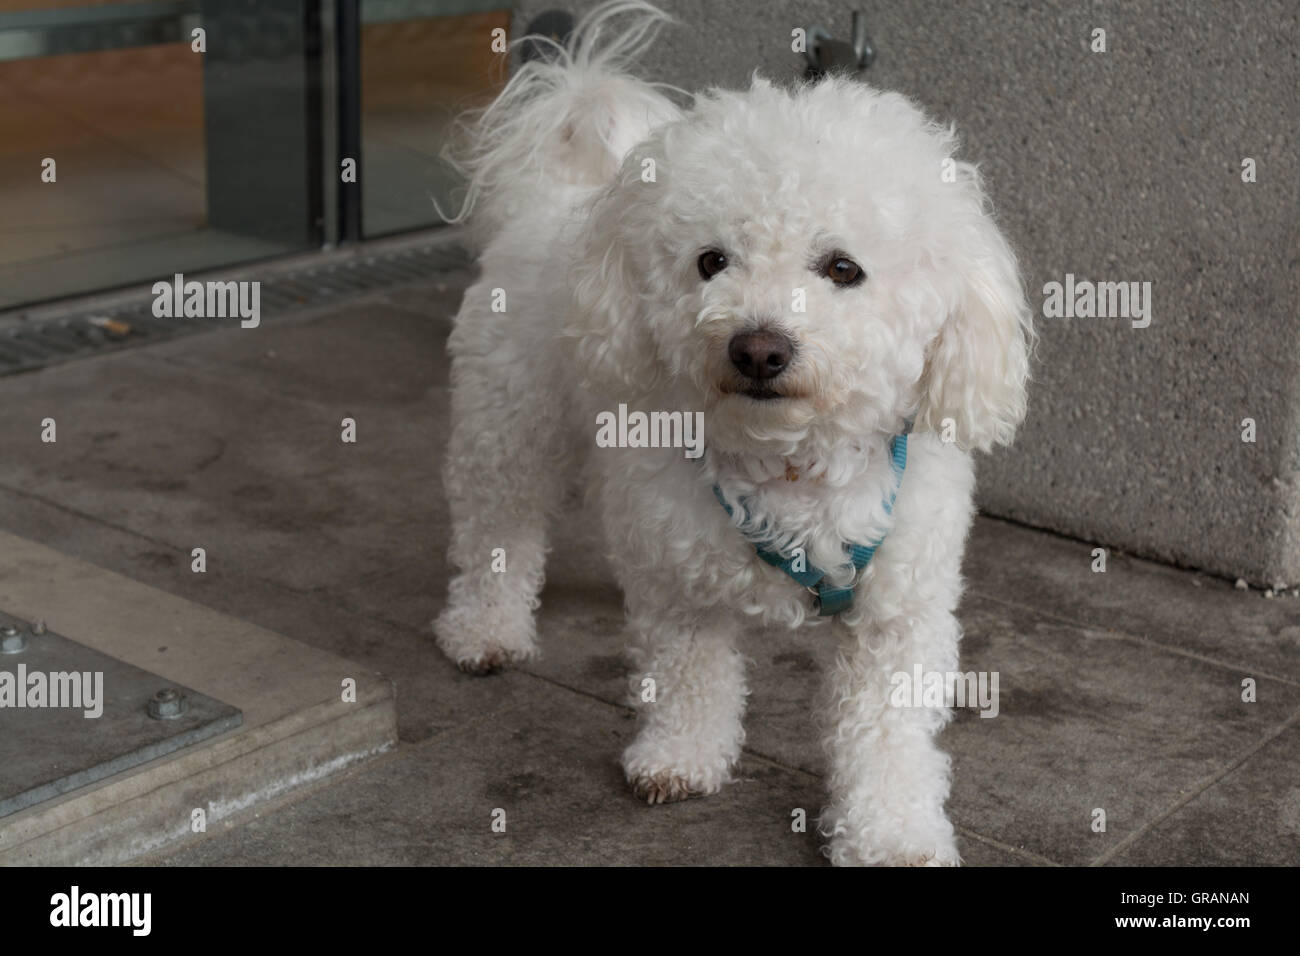 White Poodle Curious Before Shop - Stock Image